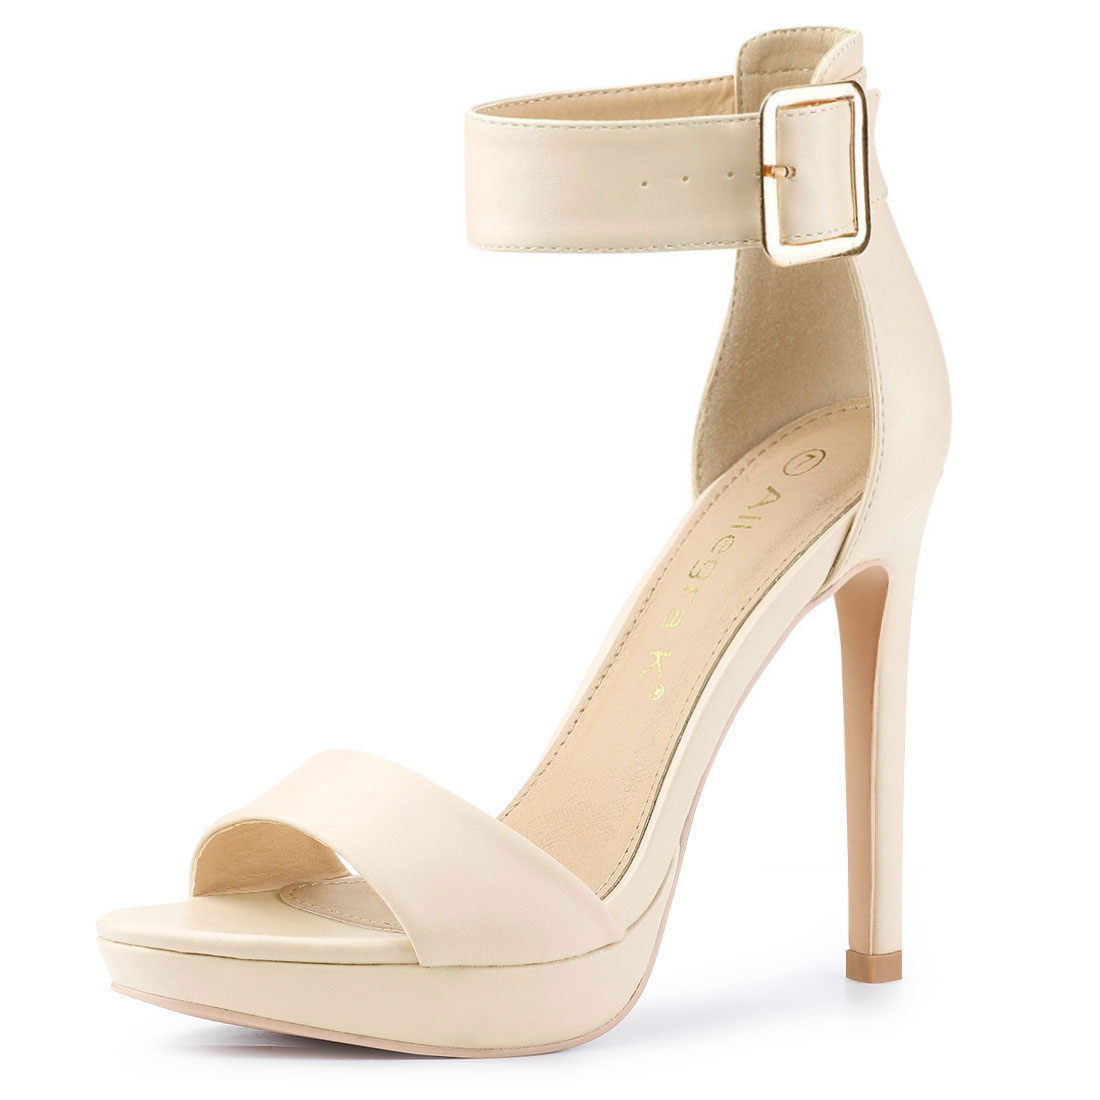 Allegra K Women's Open Toe Platform Strap Stiletto Heel Sandals Beige US 10